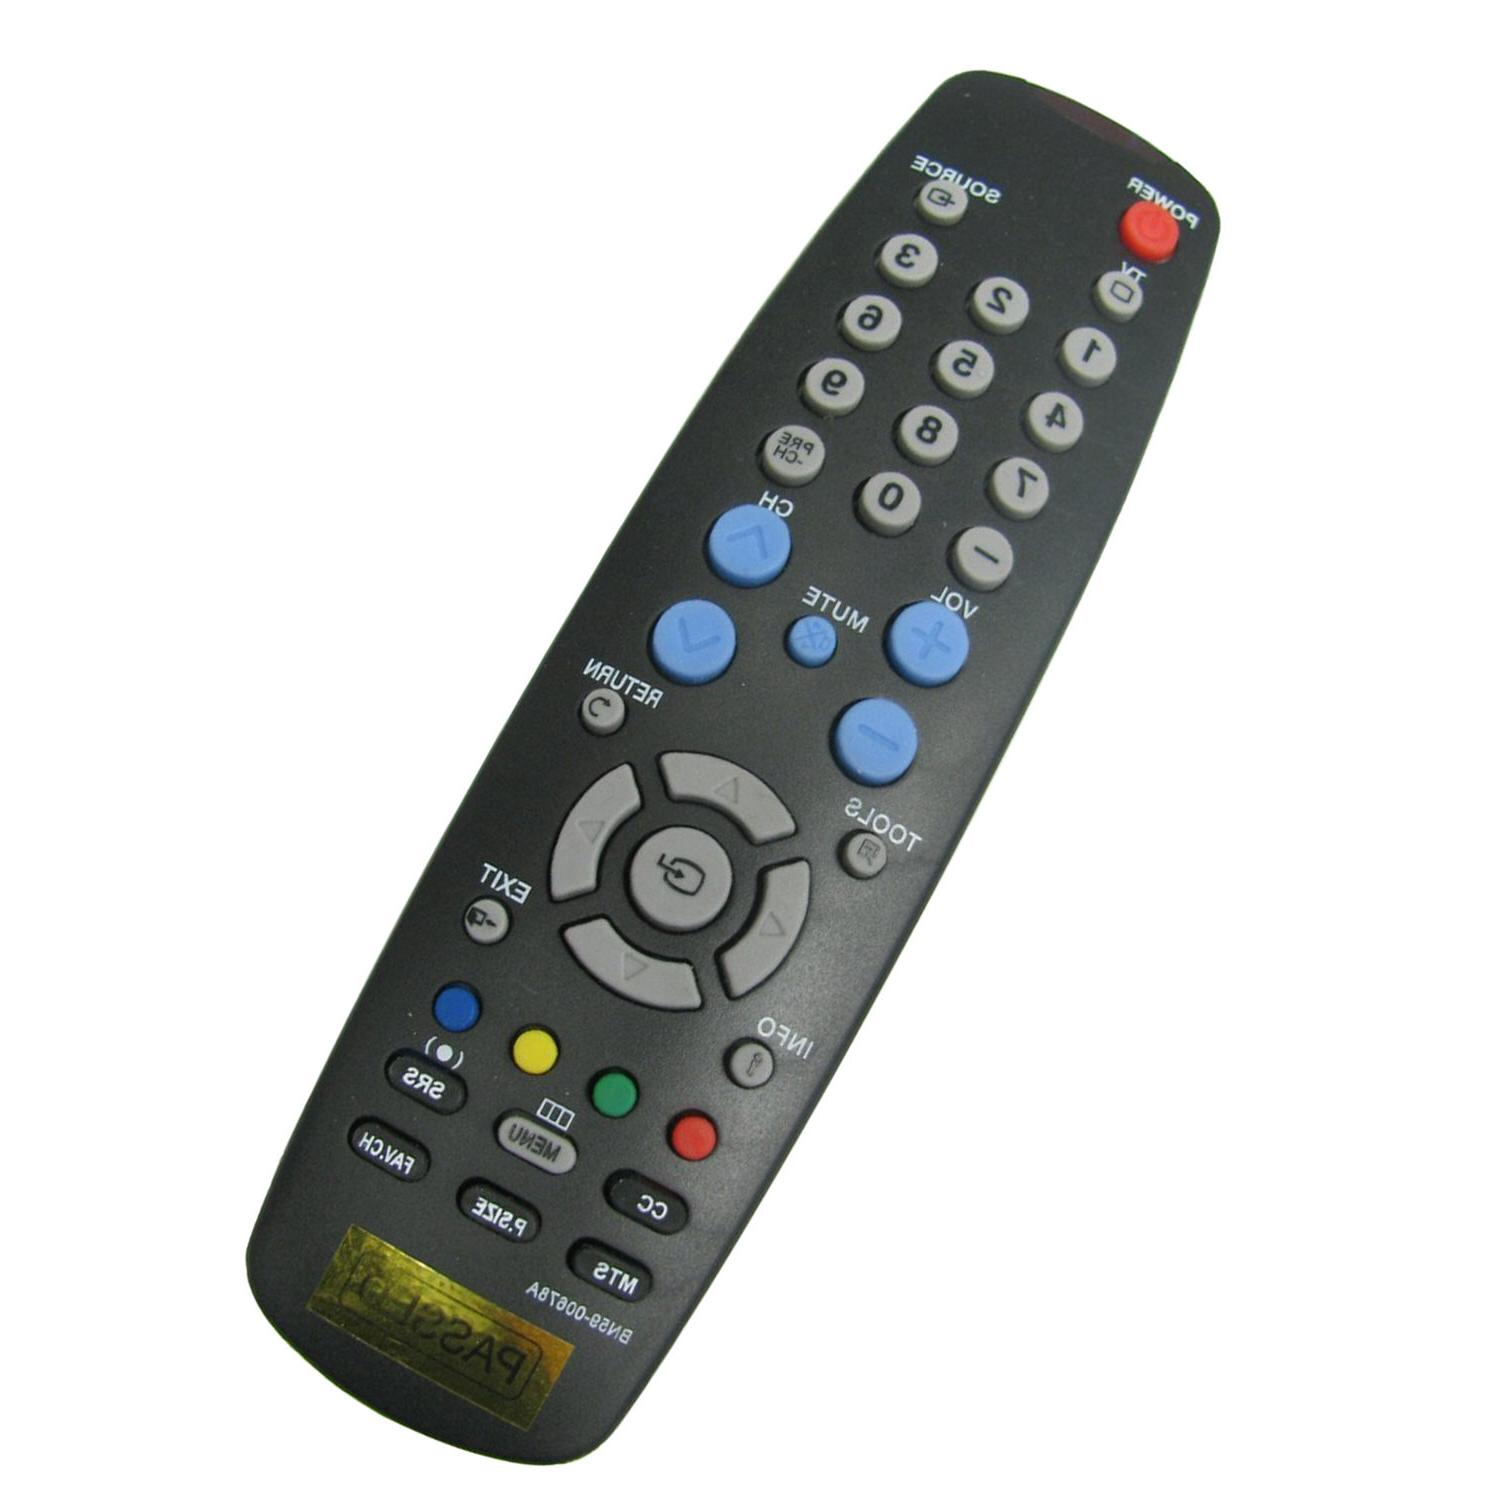 New TV Remote BN59-00678A for Samsung TV HL61A510J1F HL67A51